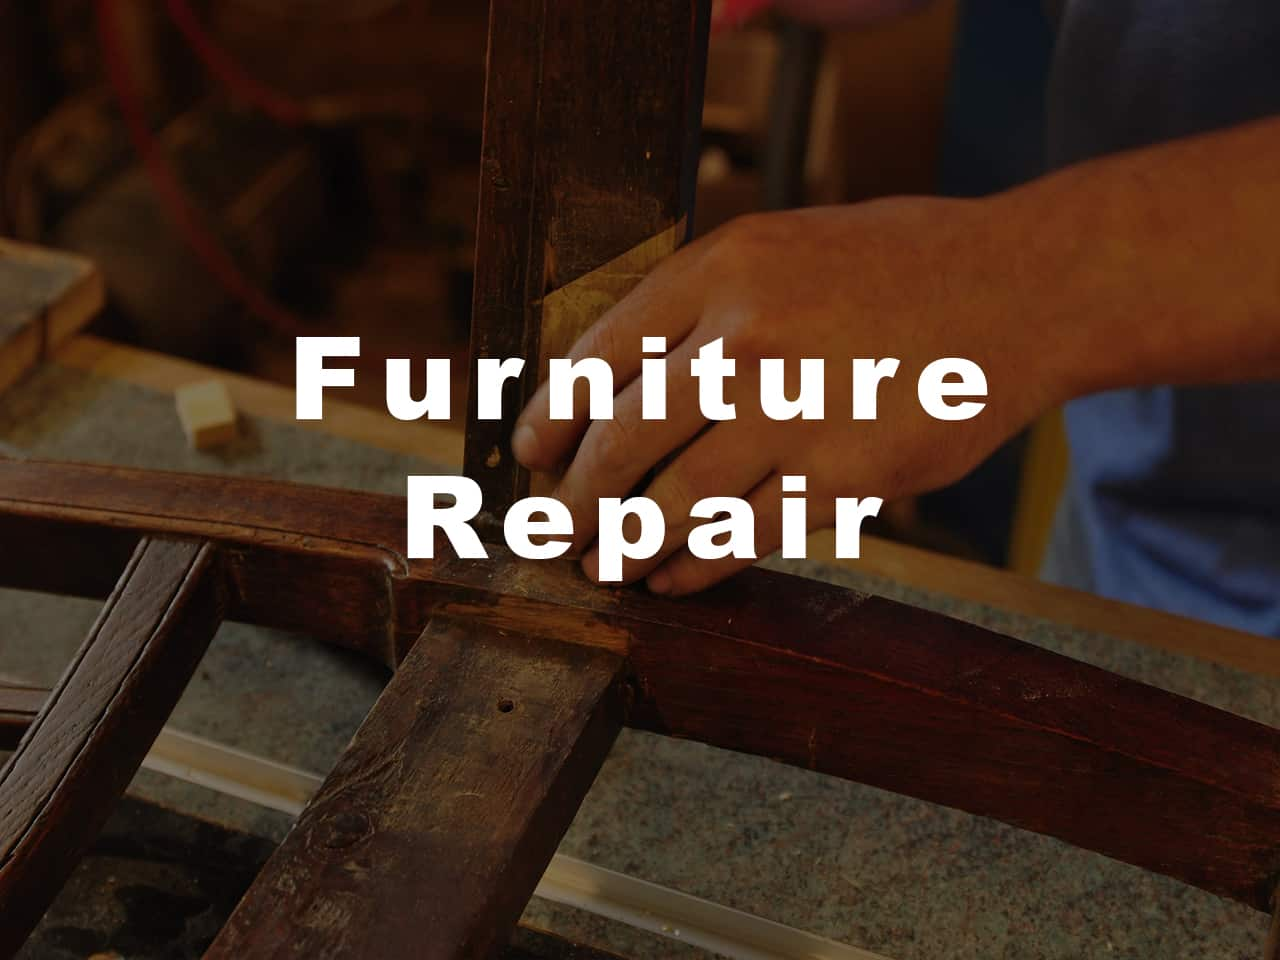 Victor Lia Refinishers, Cleveland Furniture Refinishing Furniture Repair Akron Akron Furniture Refinishing Furniture Repair Cleveland